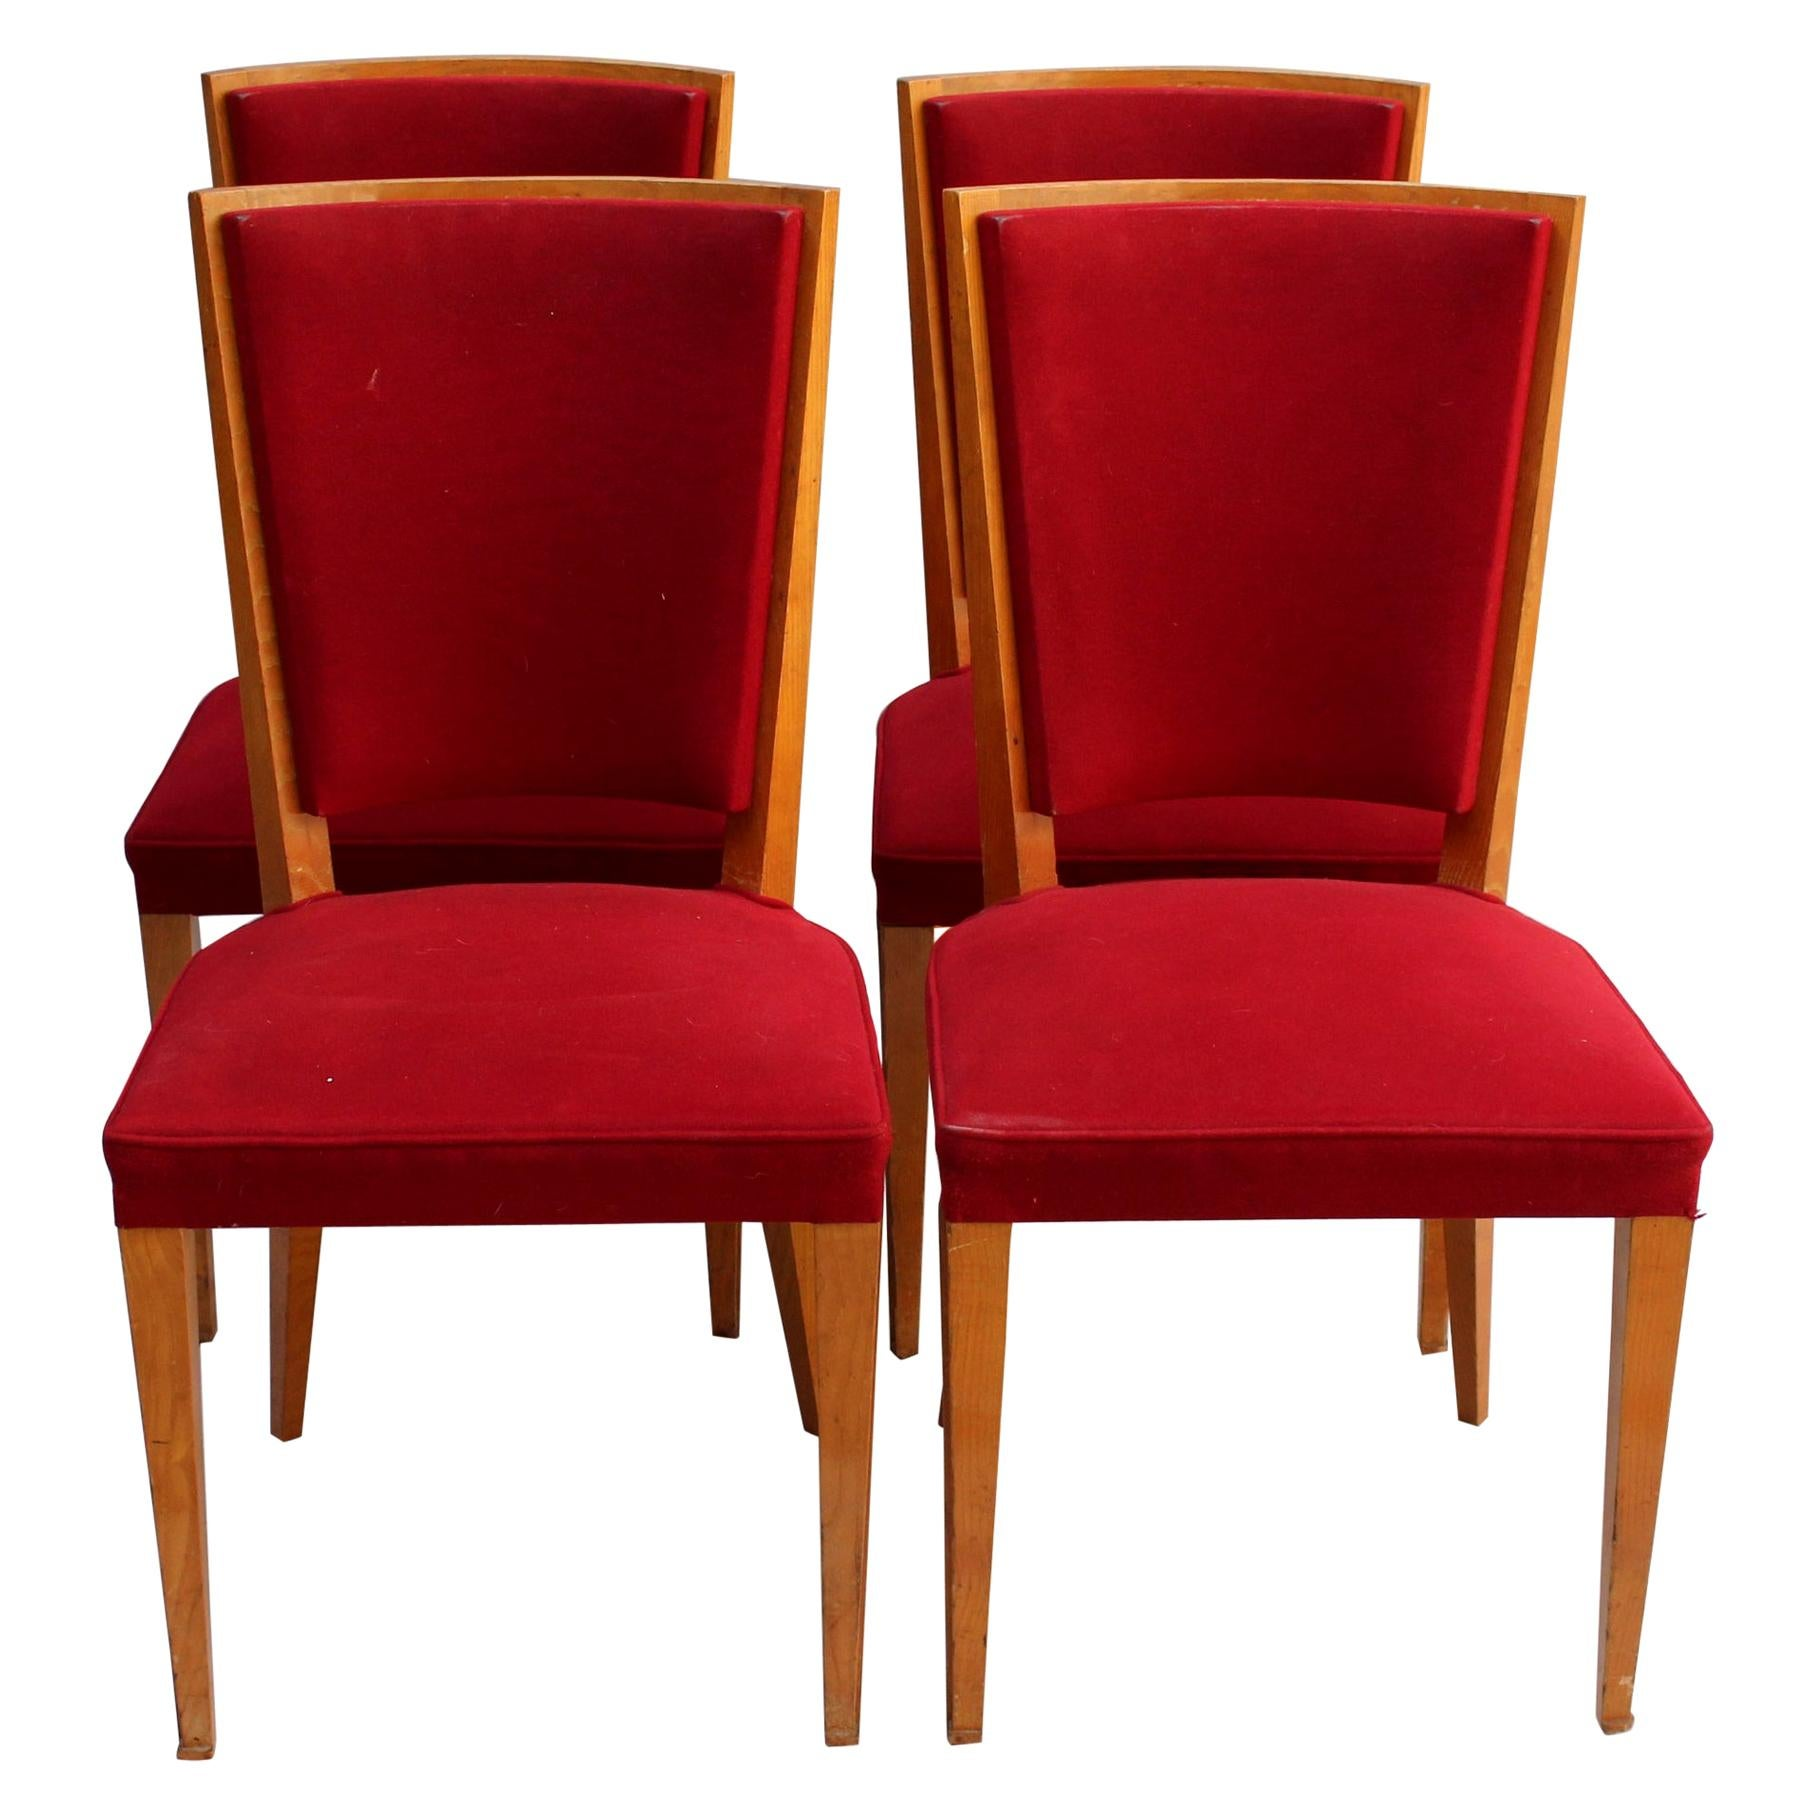 4 French Art Deco Oak Dining Chairs